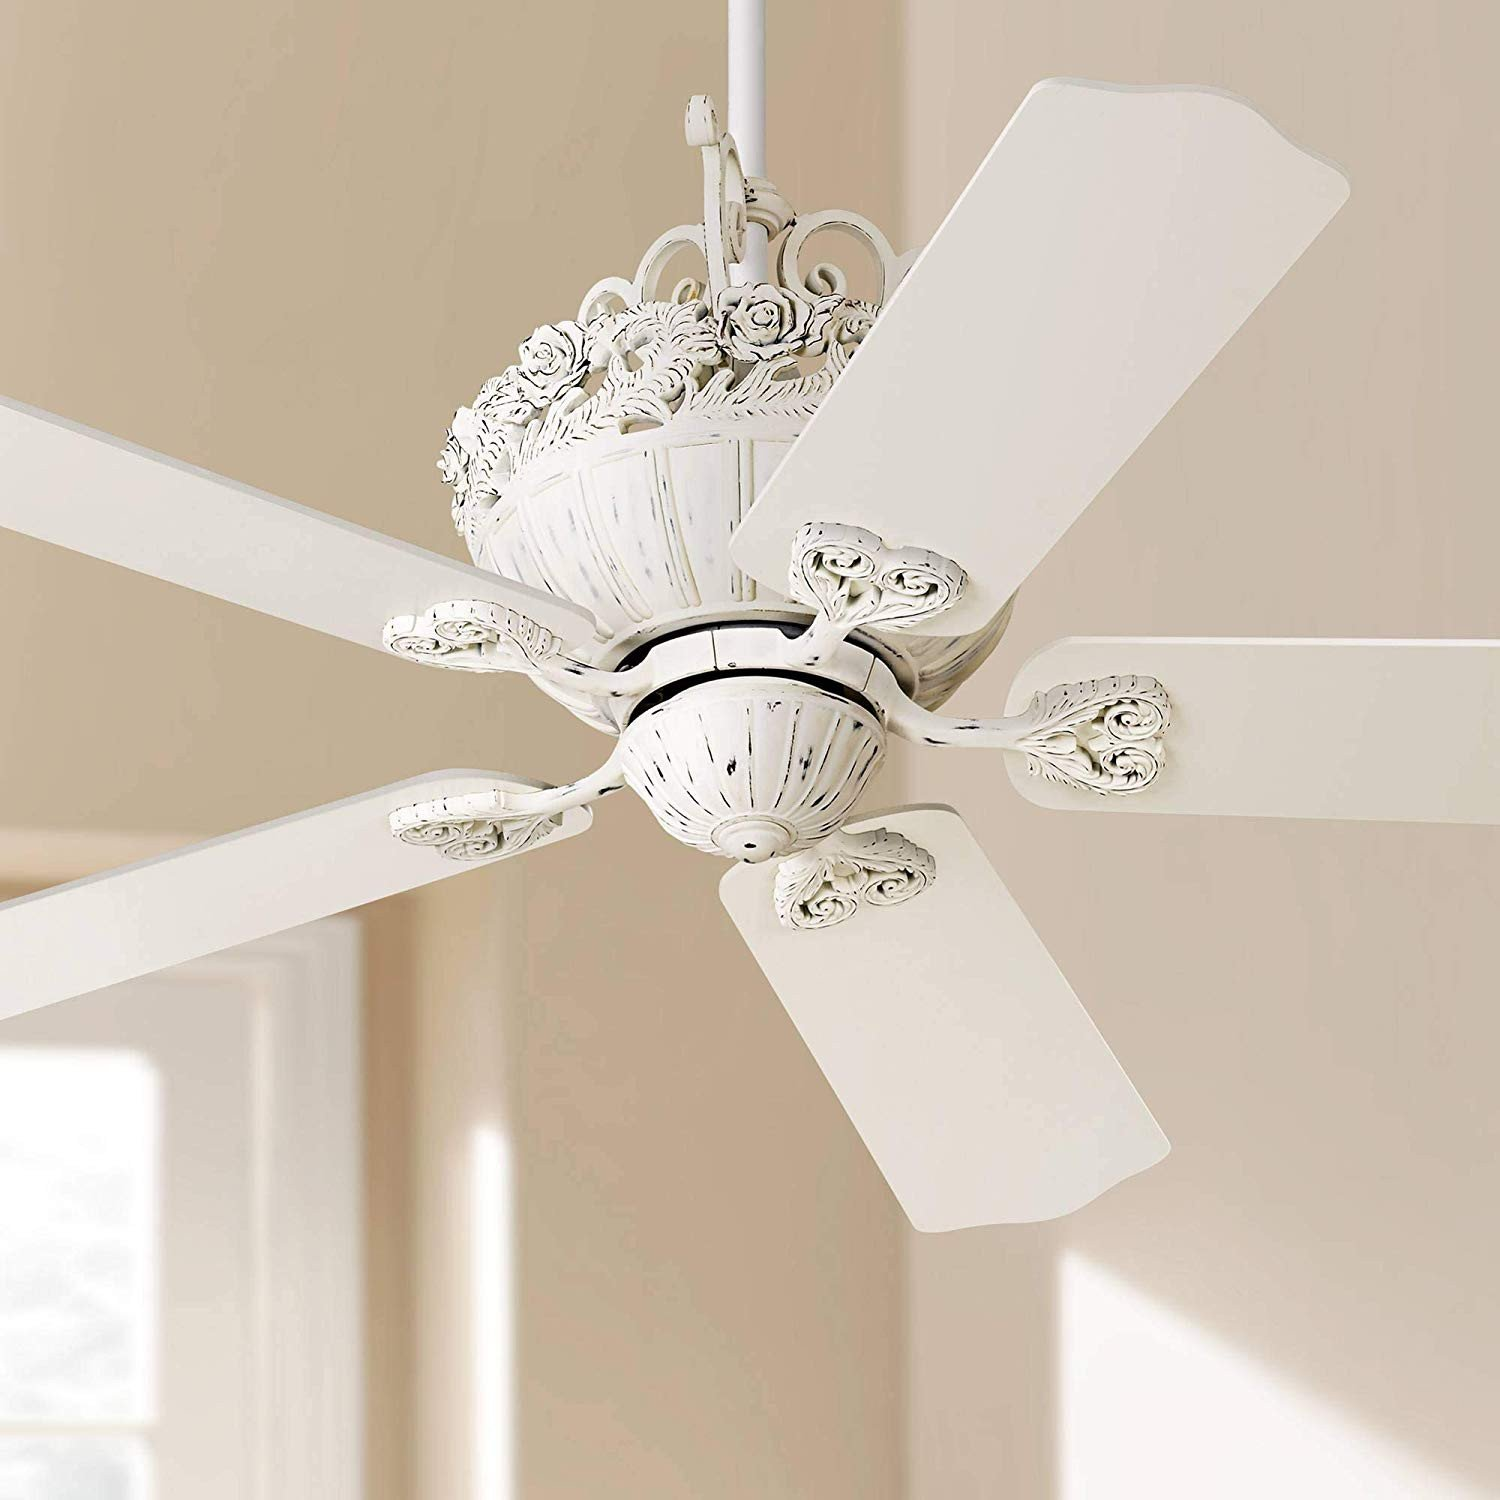 "Small Bedroom Ceiling Fan Lovely 52"" Casa Shabby Chic Ceiling Fan Antique Floral Scroll Rubbed White for Living Room Kitchen Bedroom Family Dining Casa Vieja"